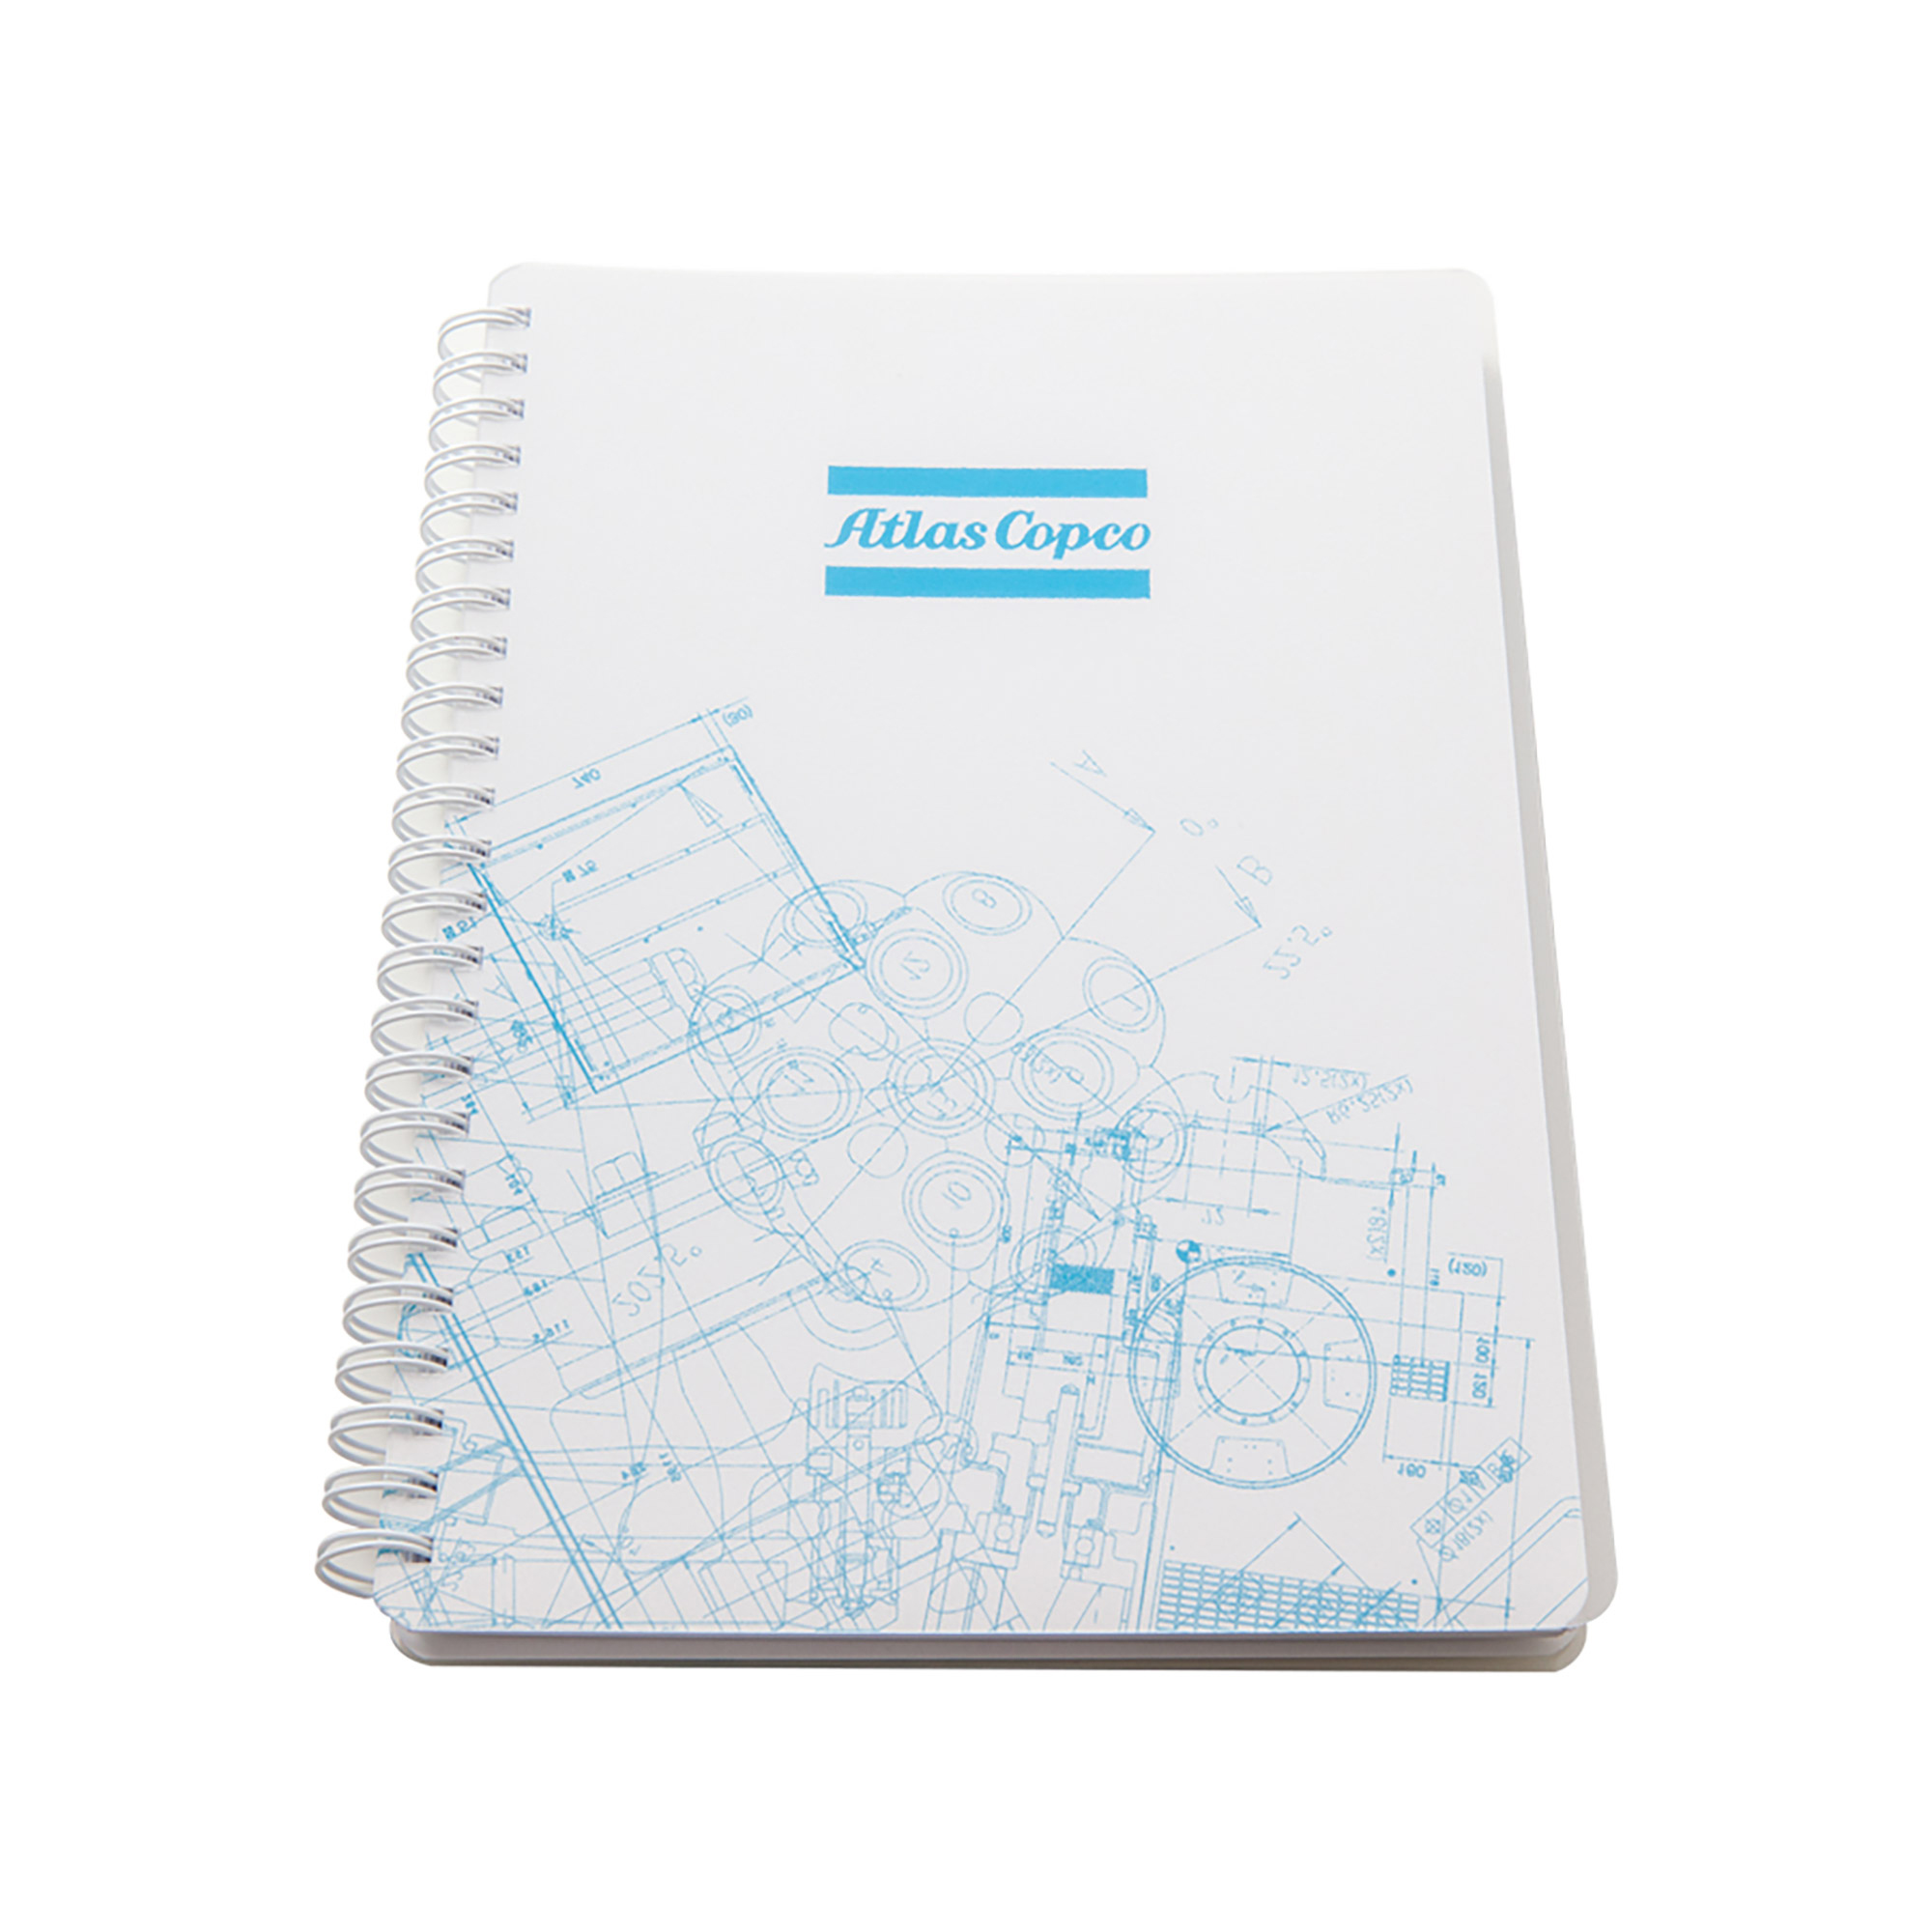 Notebook in A5 size with 80 lined papers with a transparent PP plastic cover for extra protection. The BluePrint pattern is based on Atlas Copco´s key innovations. By merging original blueprints from all business areas, a unique graphic pattern has been created.